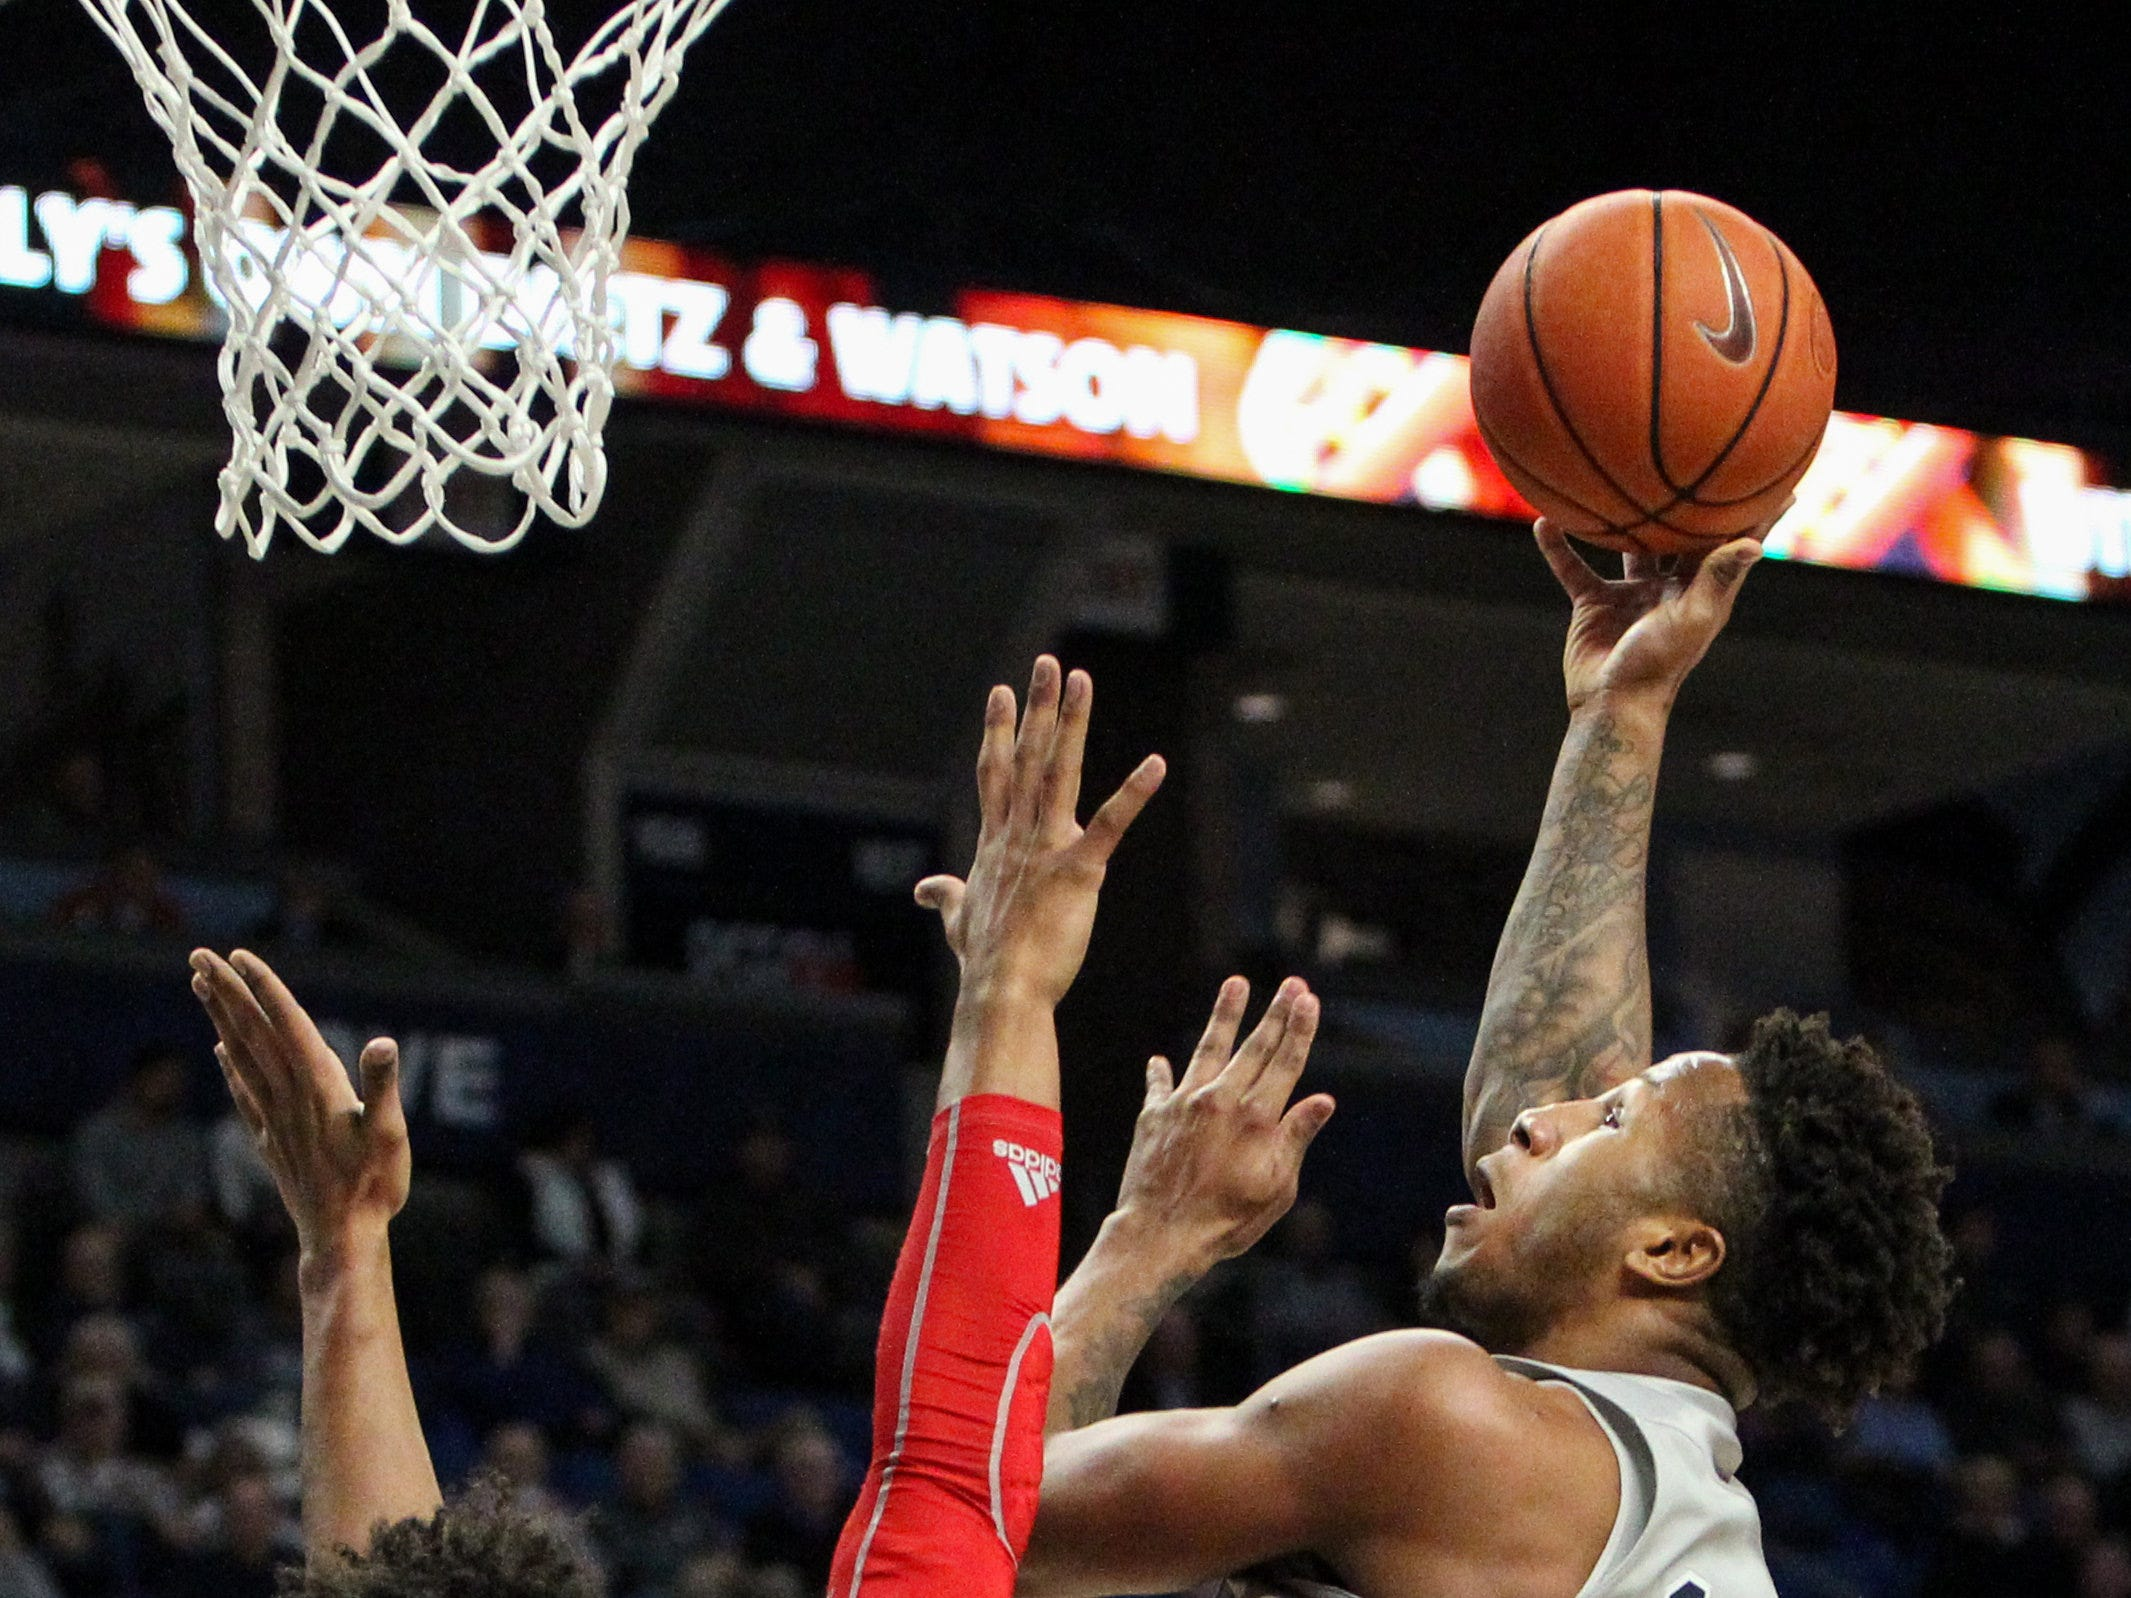 Dec 4, 2018; University Park, PA, USA; Penn State Nittany Lions forward Lamar Stevens (11) drives the ball to the basket against Indiana Hoosiers forward Justin Smith (3) during the first half at Bryce Jordan Center. Mandatory Credit: Matthew O'Haren-USA TODAY Sports